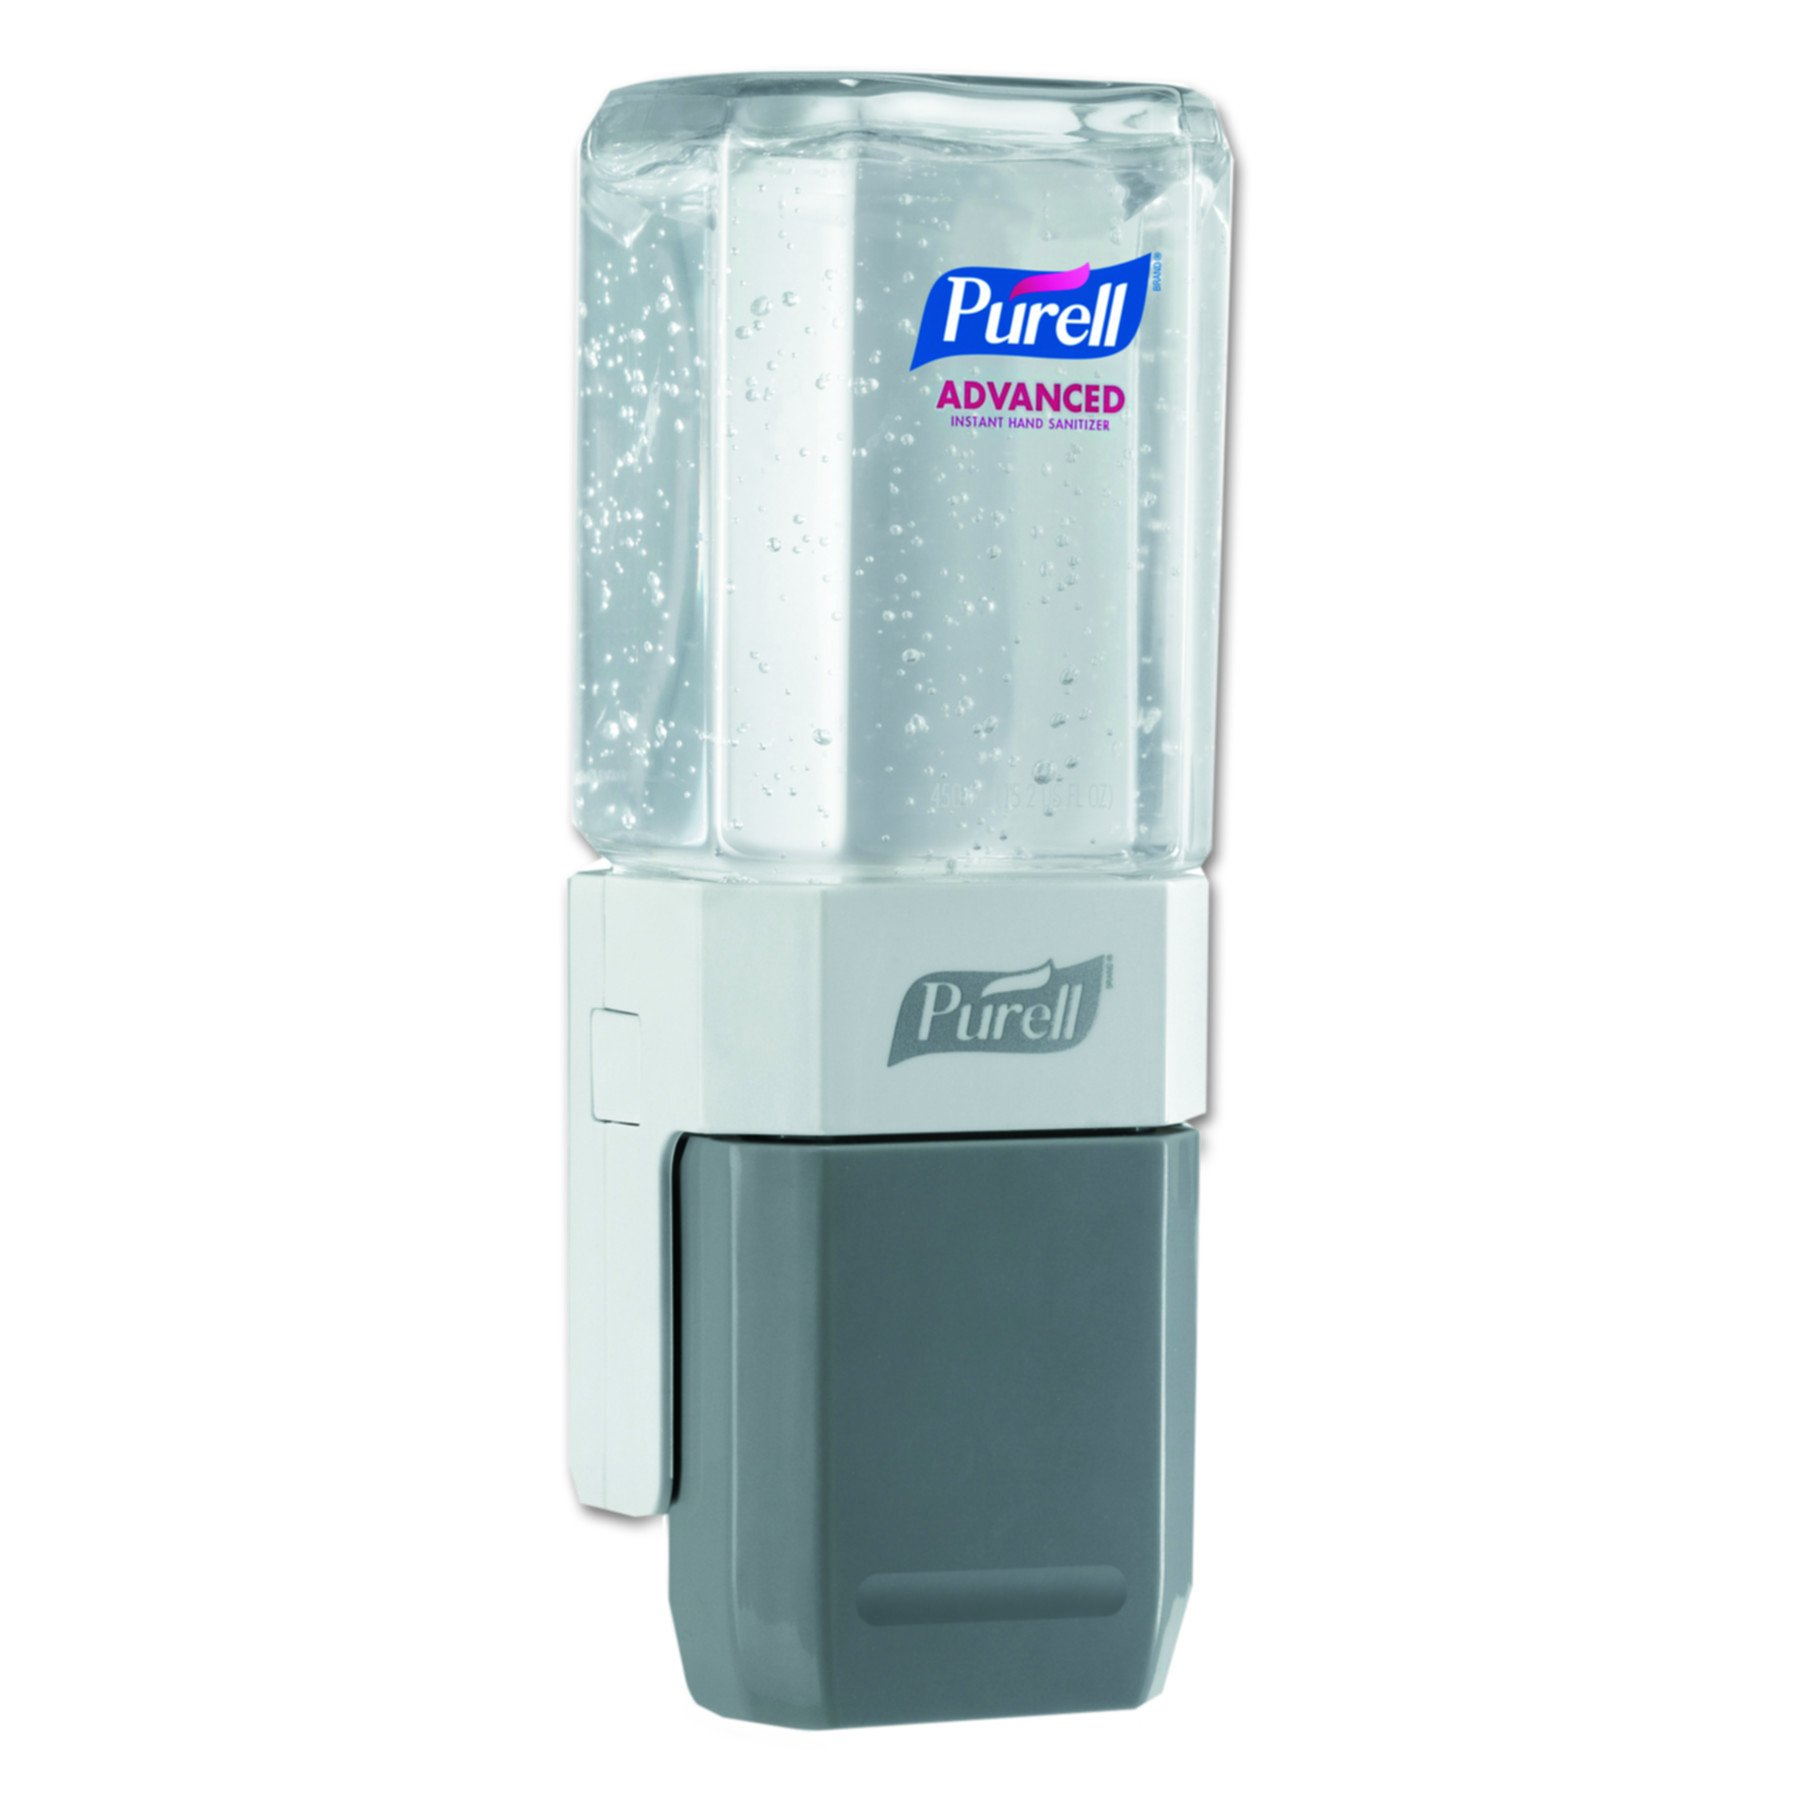 PURELL 1450-D1 Instant Hand Sanitizer Dispenser with Refill for 450 mL Refills, White